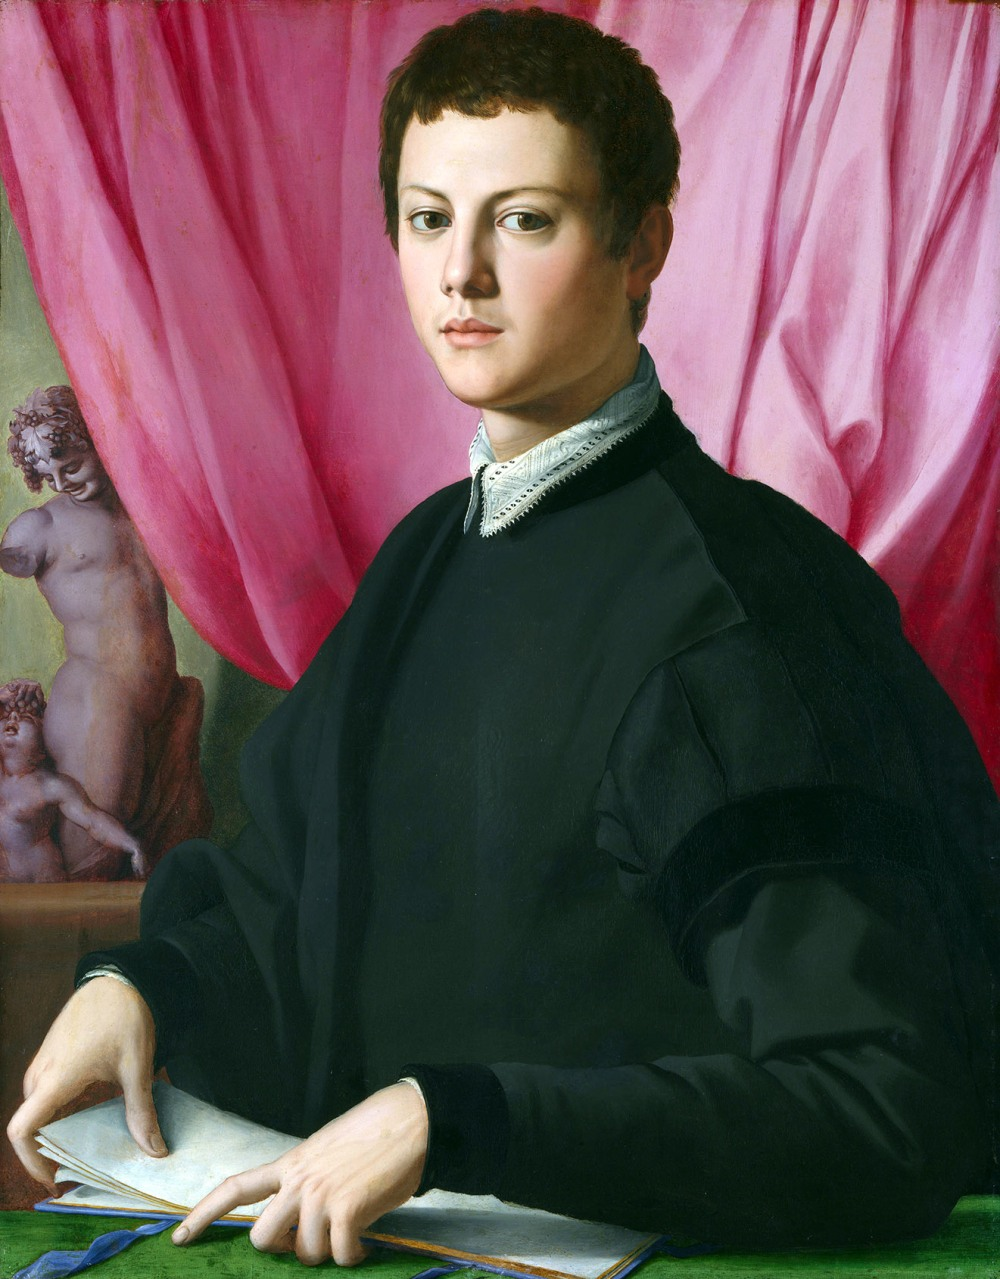 Agnolo Bronzino. Retrato de joven. 1550-1555. National Gallery. Londres